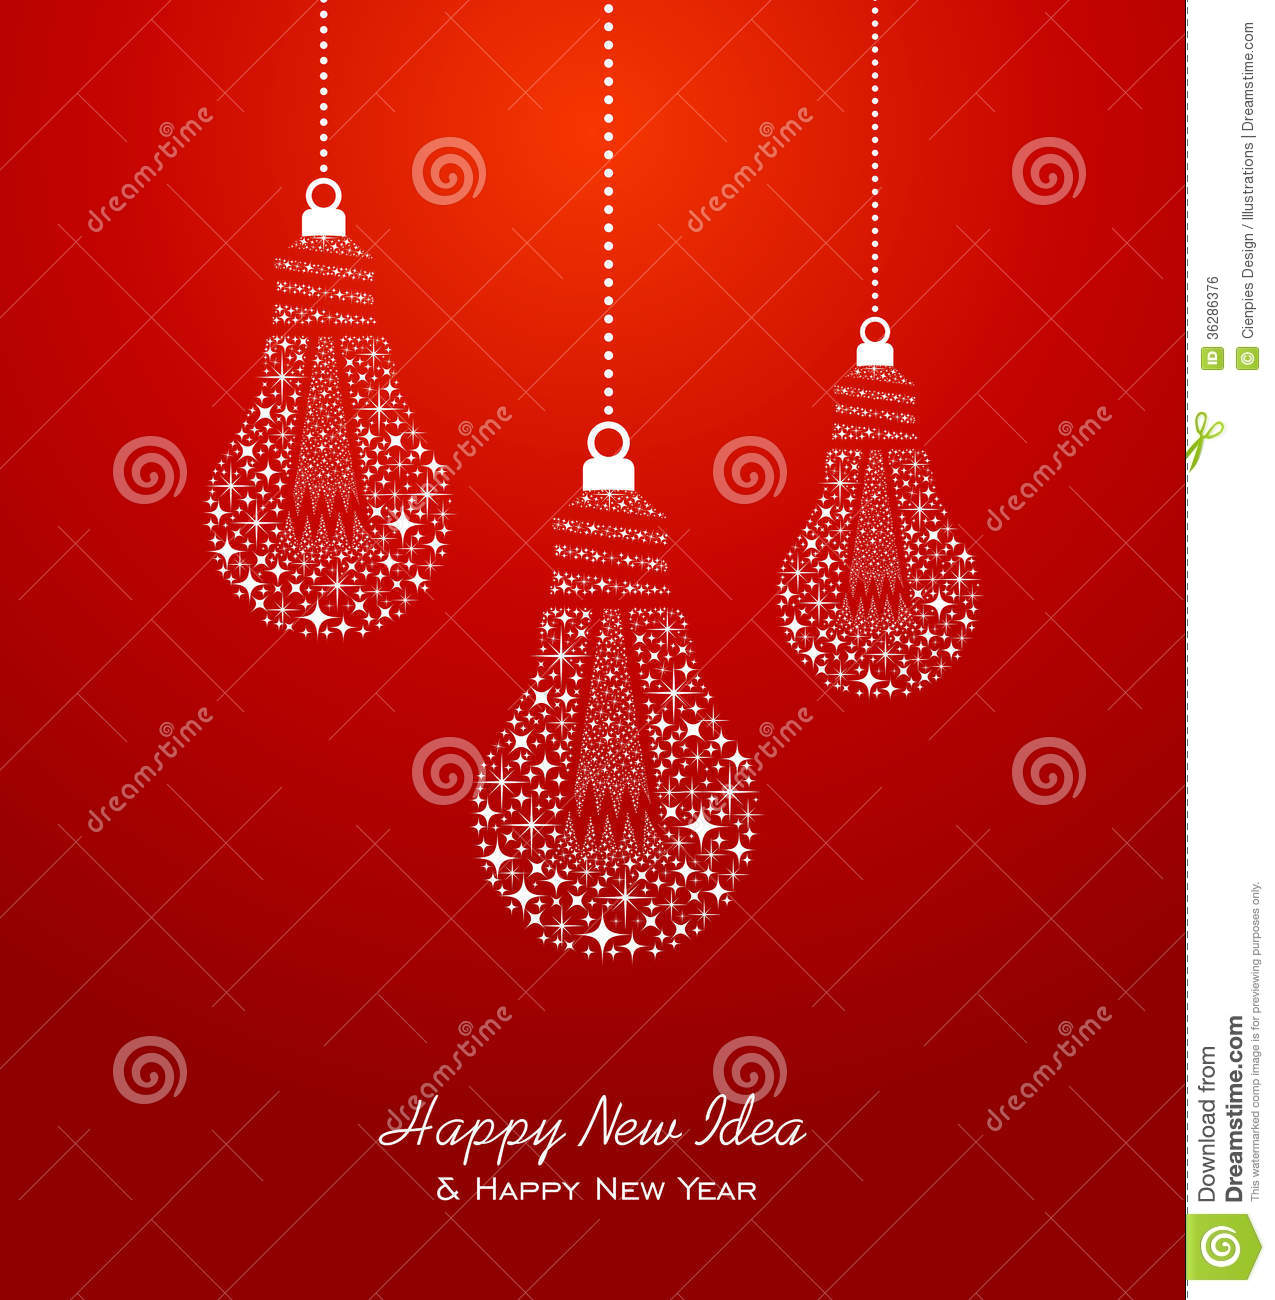 Happy New Year And Ideas 2014 Greeting Card Stock Vector ...